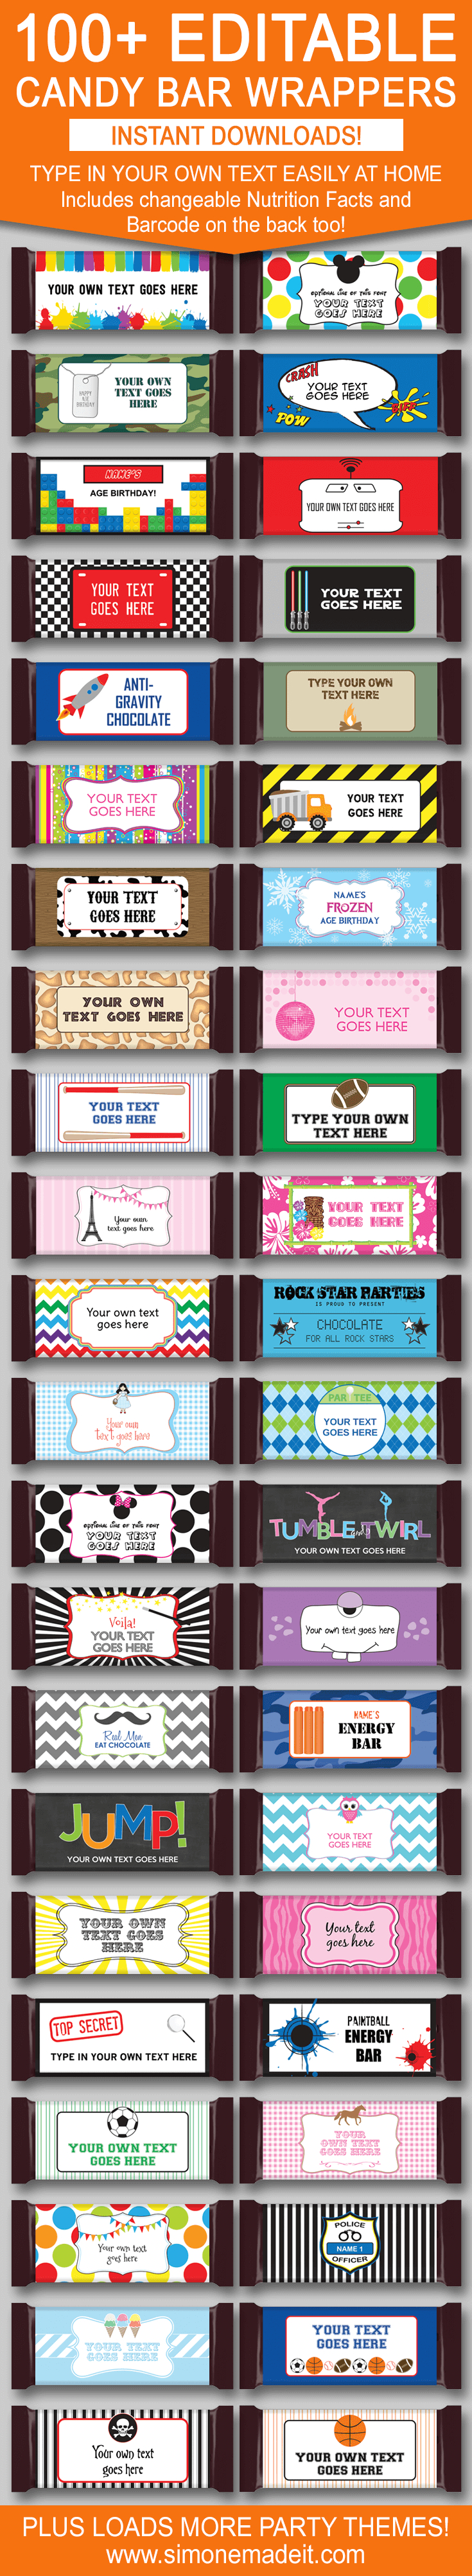 Diy Candy Bar Wrapper Templates – Personalized Candy Bars  Candy In Hershey Labels Template